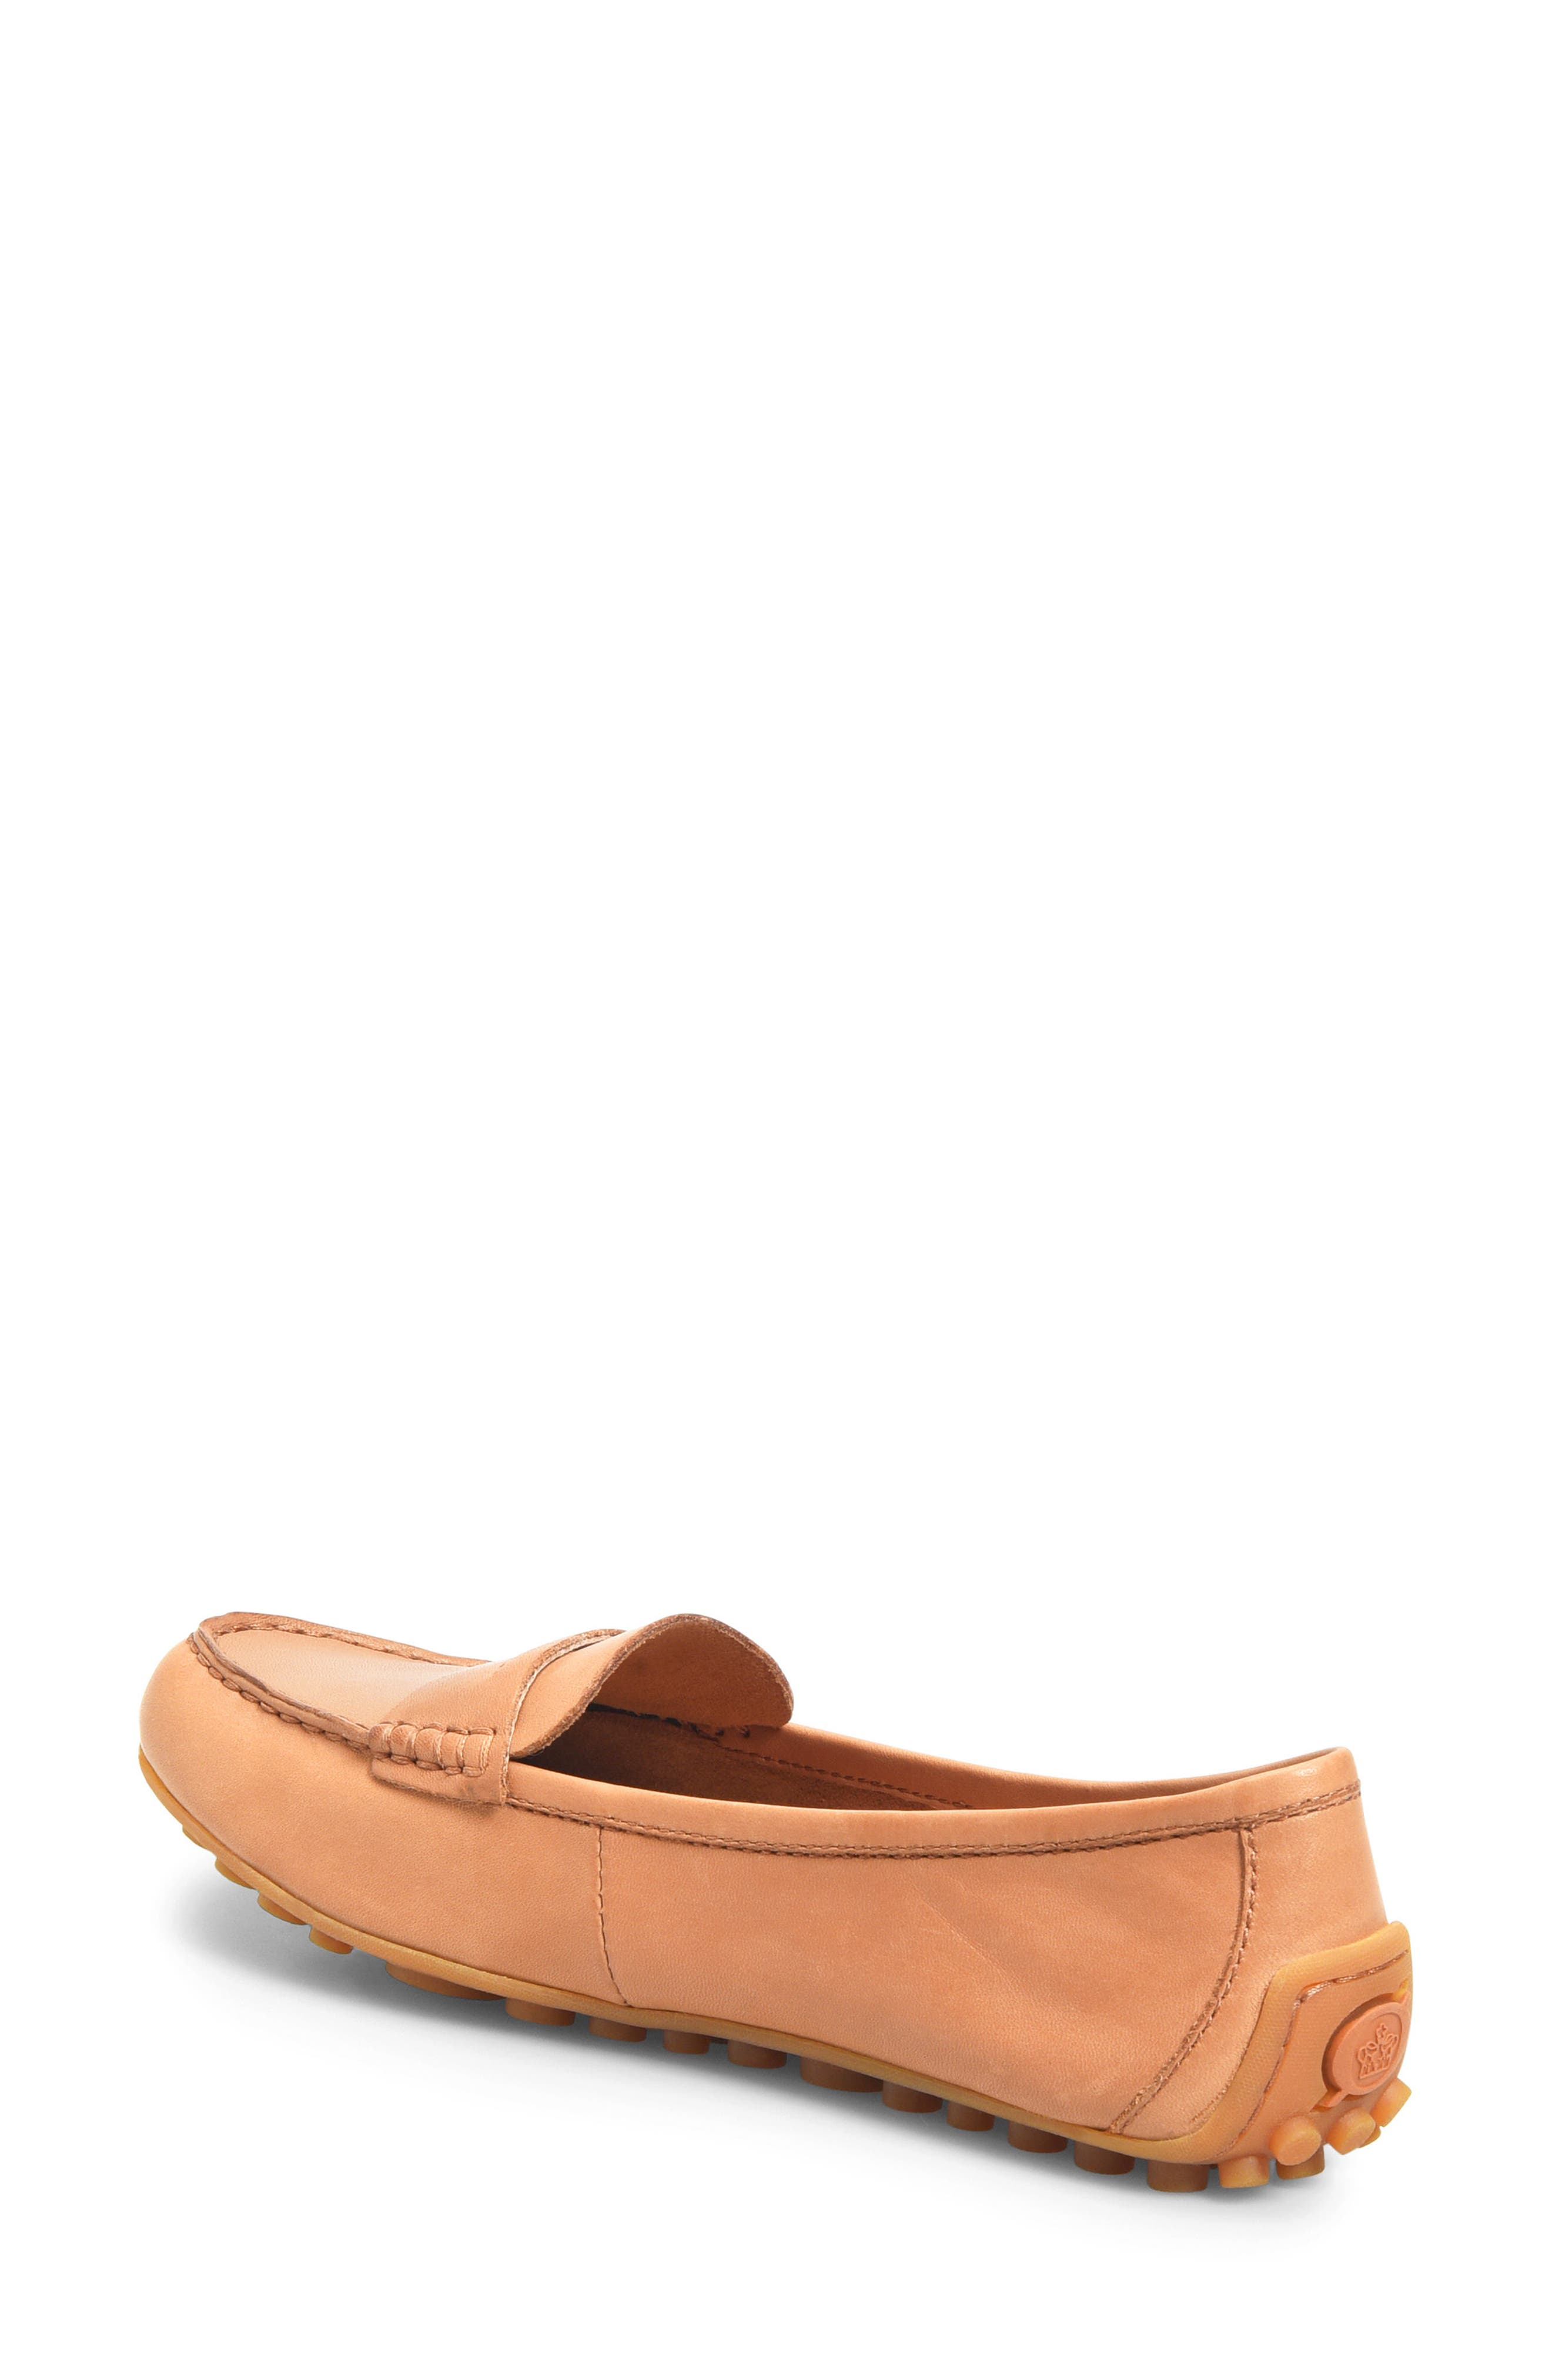 BØRN, Malena Driving Loafer, Alternate thumbnail 2, color, TAN BROWN LEATHER